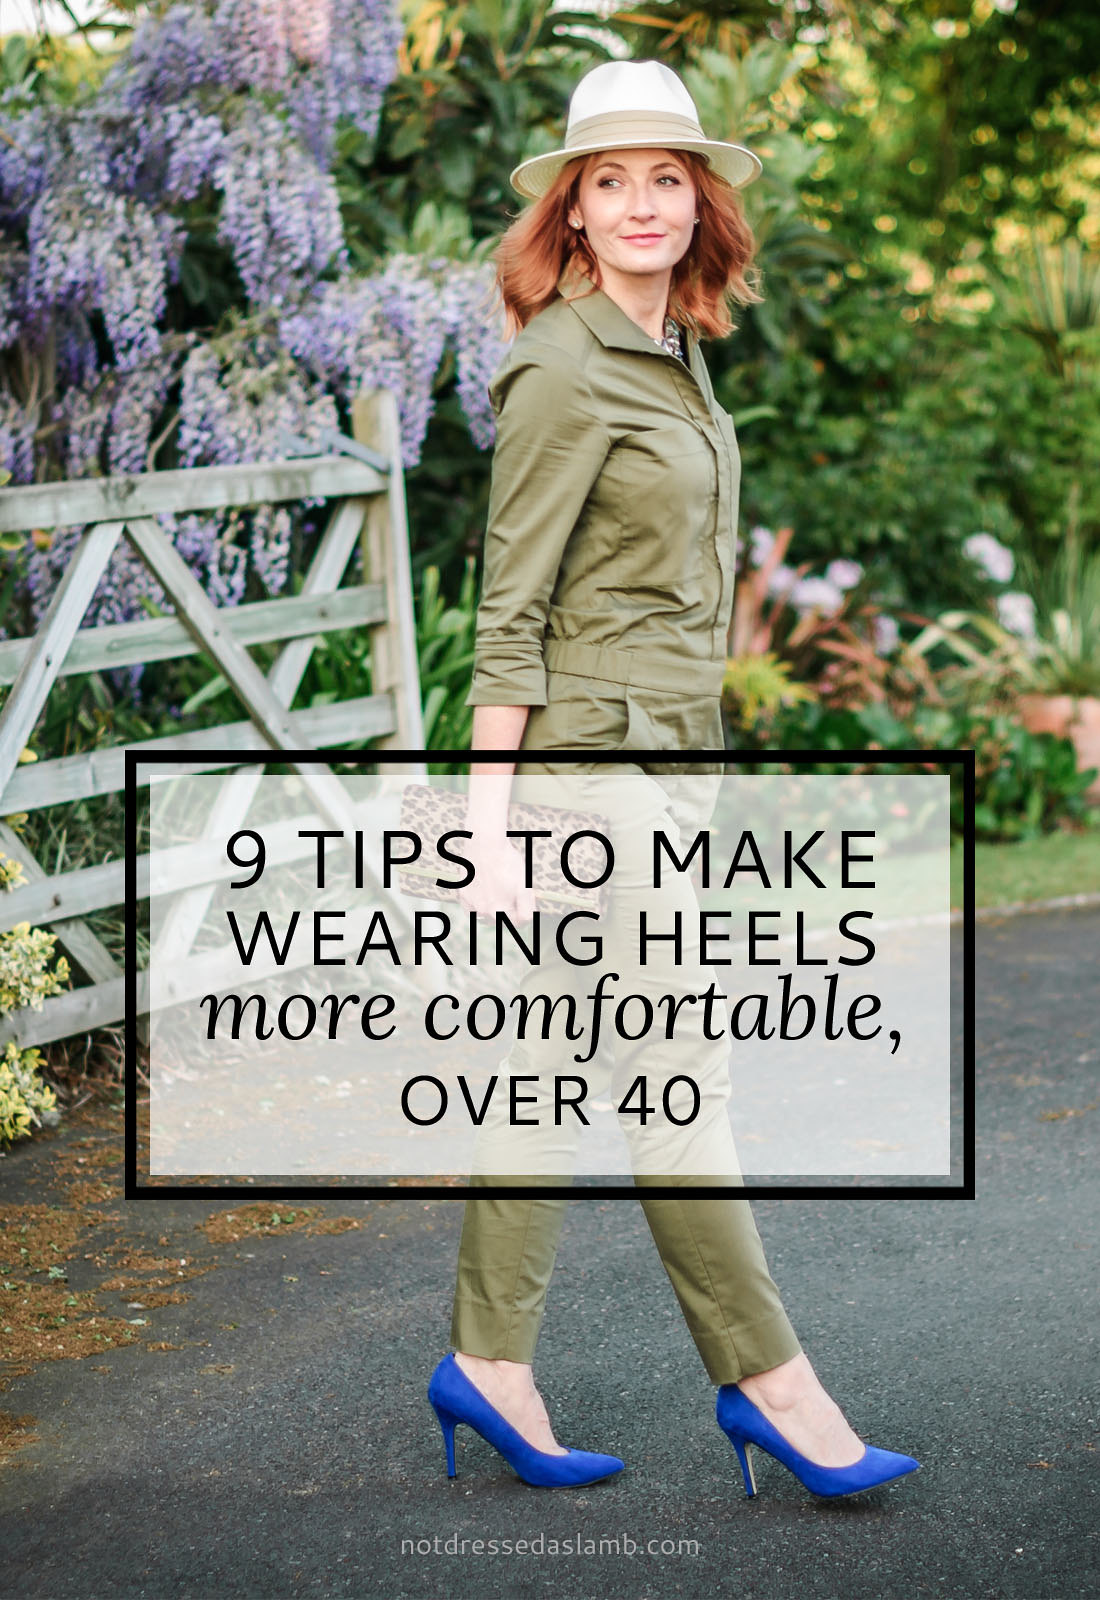 9 Tips to Make Wearing Heels More Comfortable, Over 40